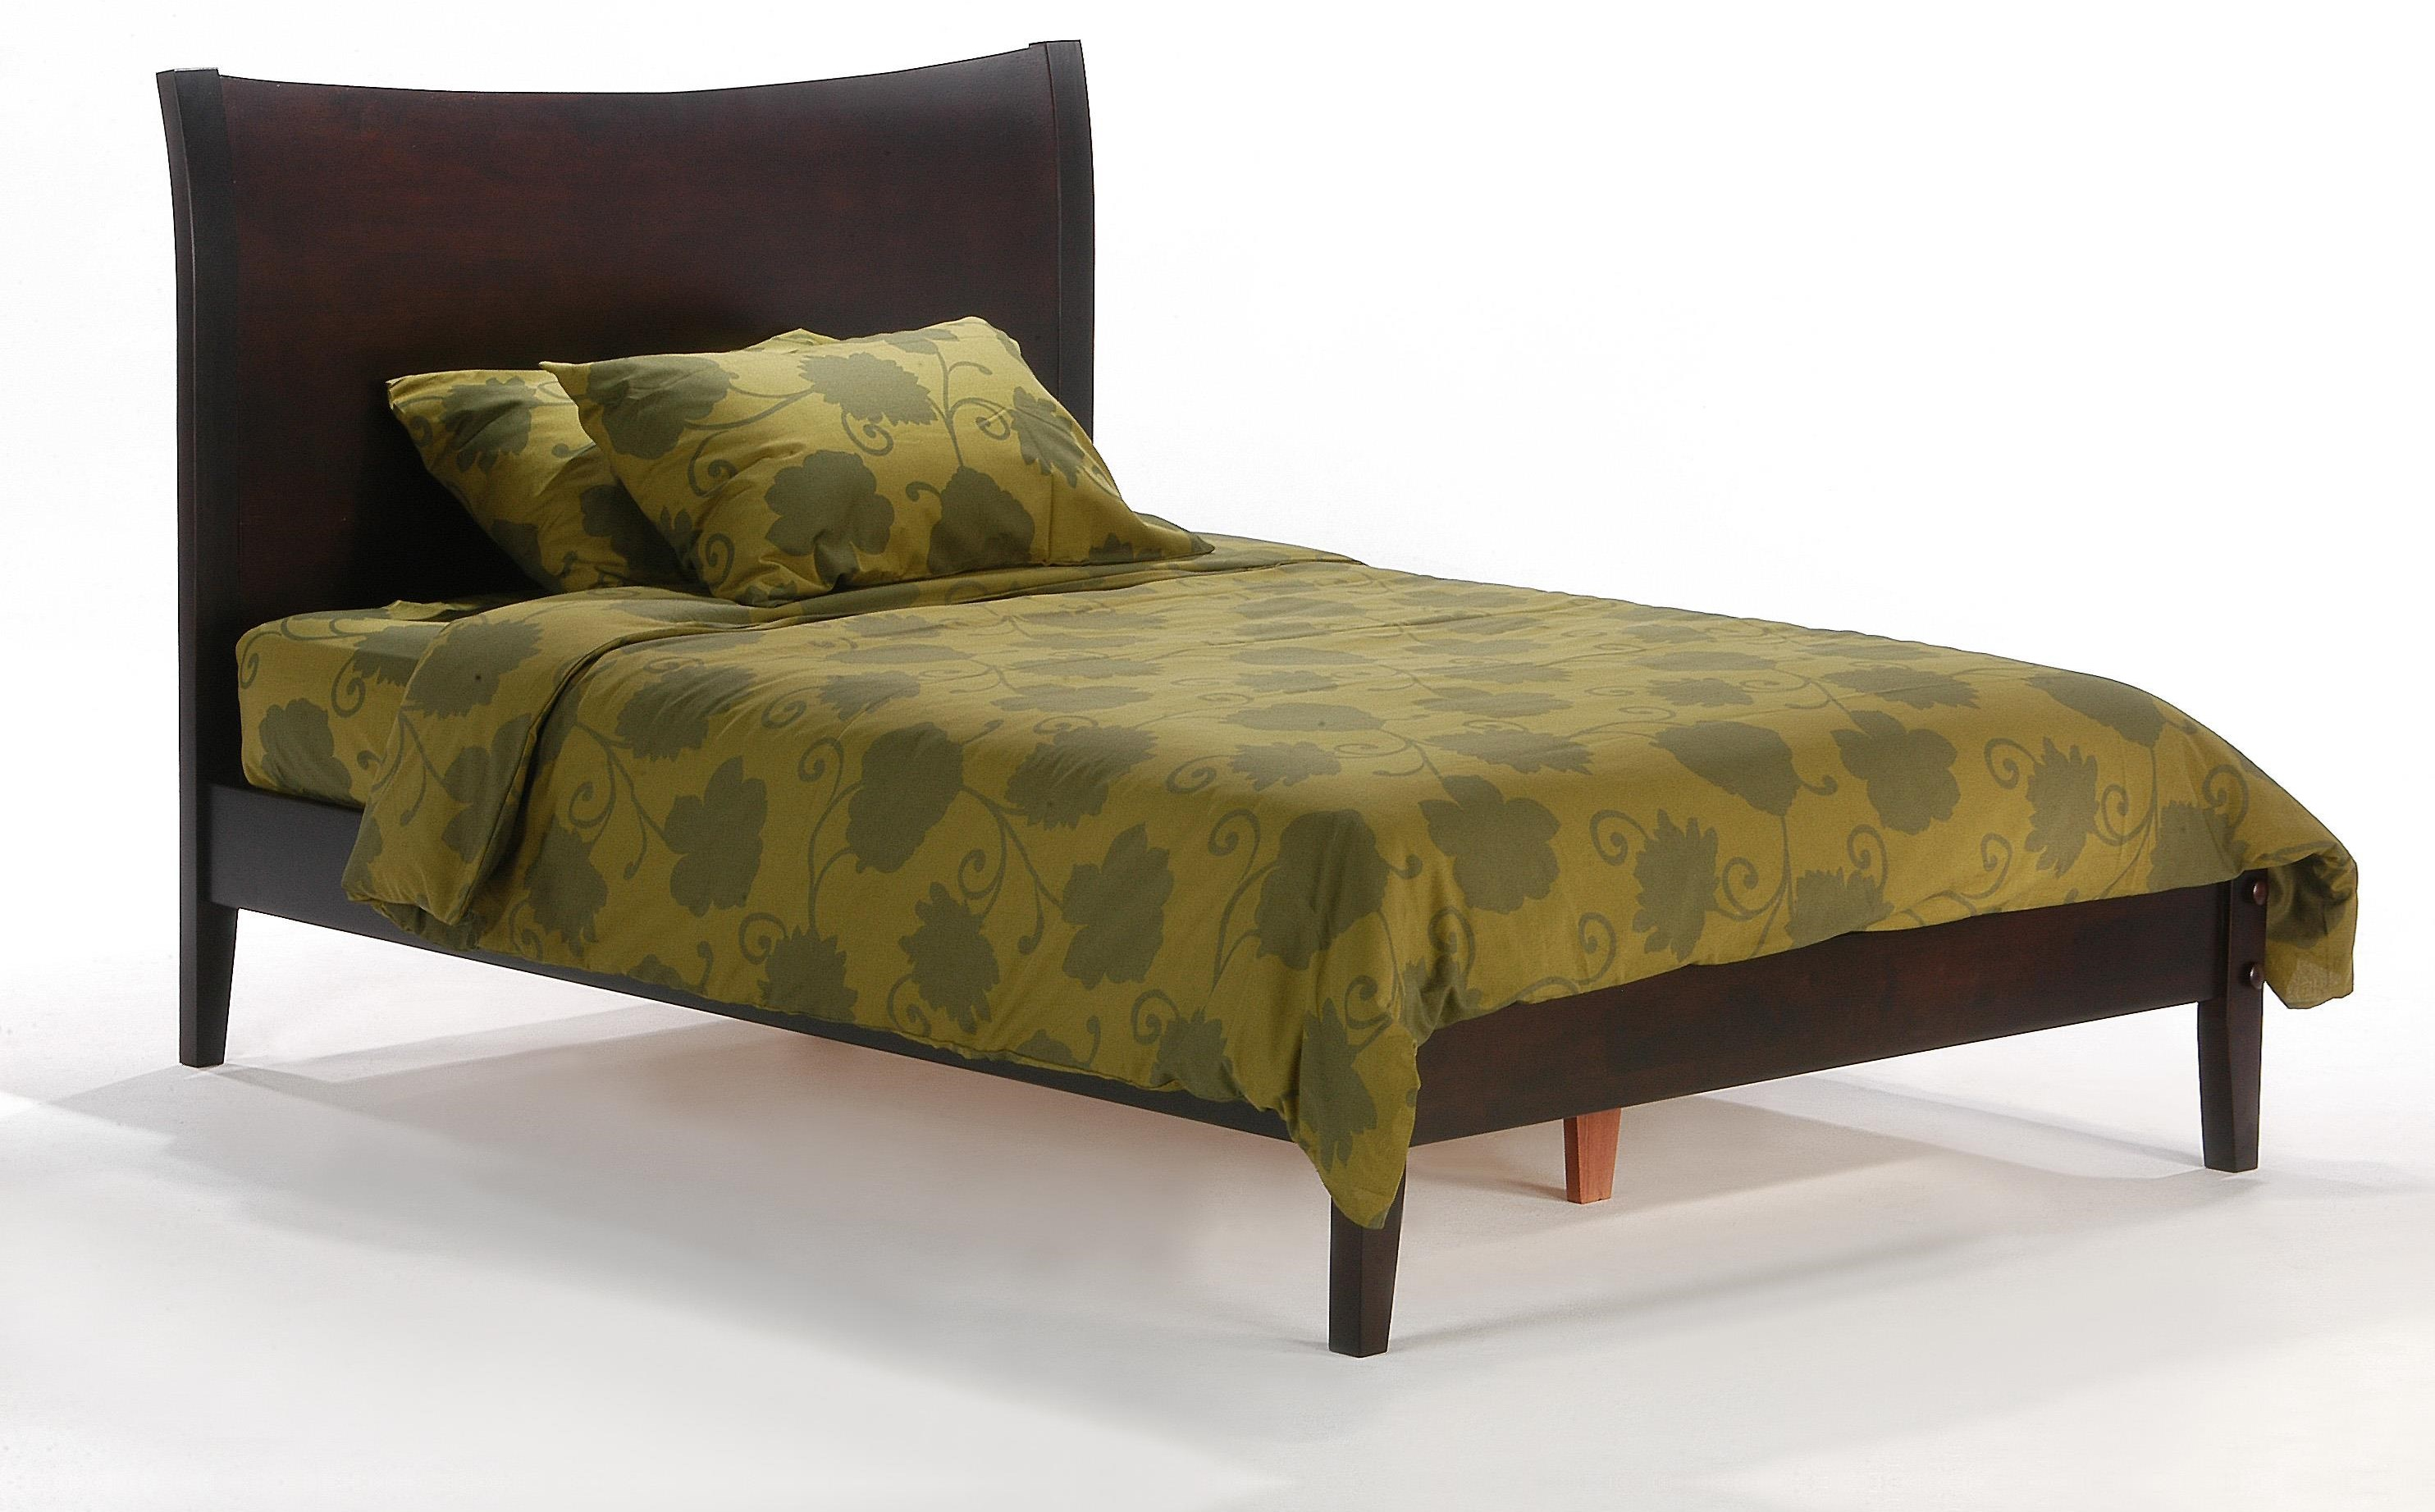 Blackpepper - Chocolate Cal King Bed by Pacific Manufacturing at SlumberWorld